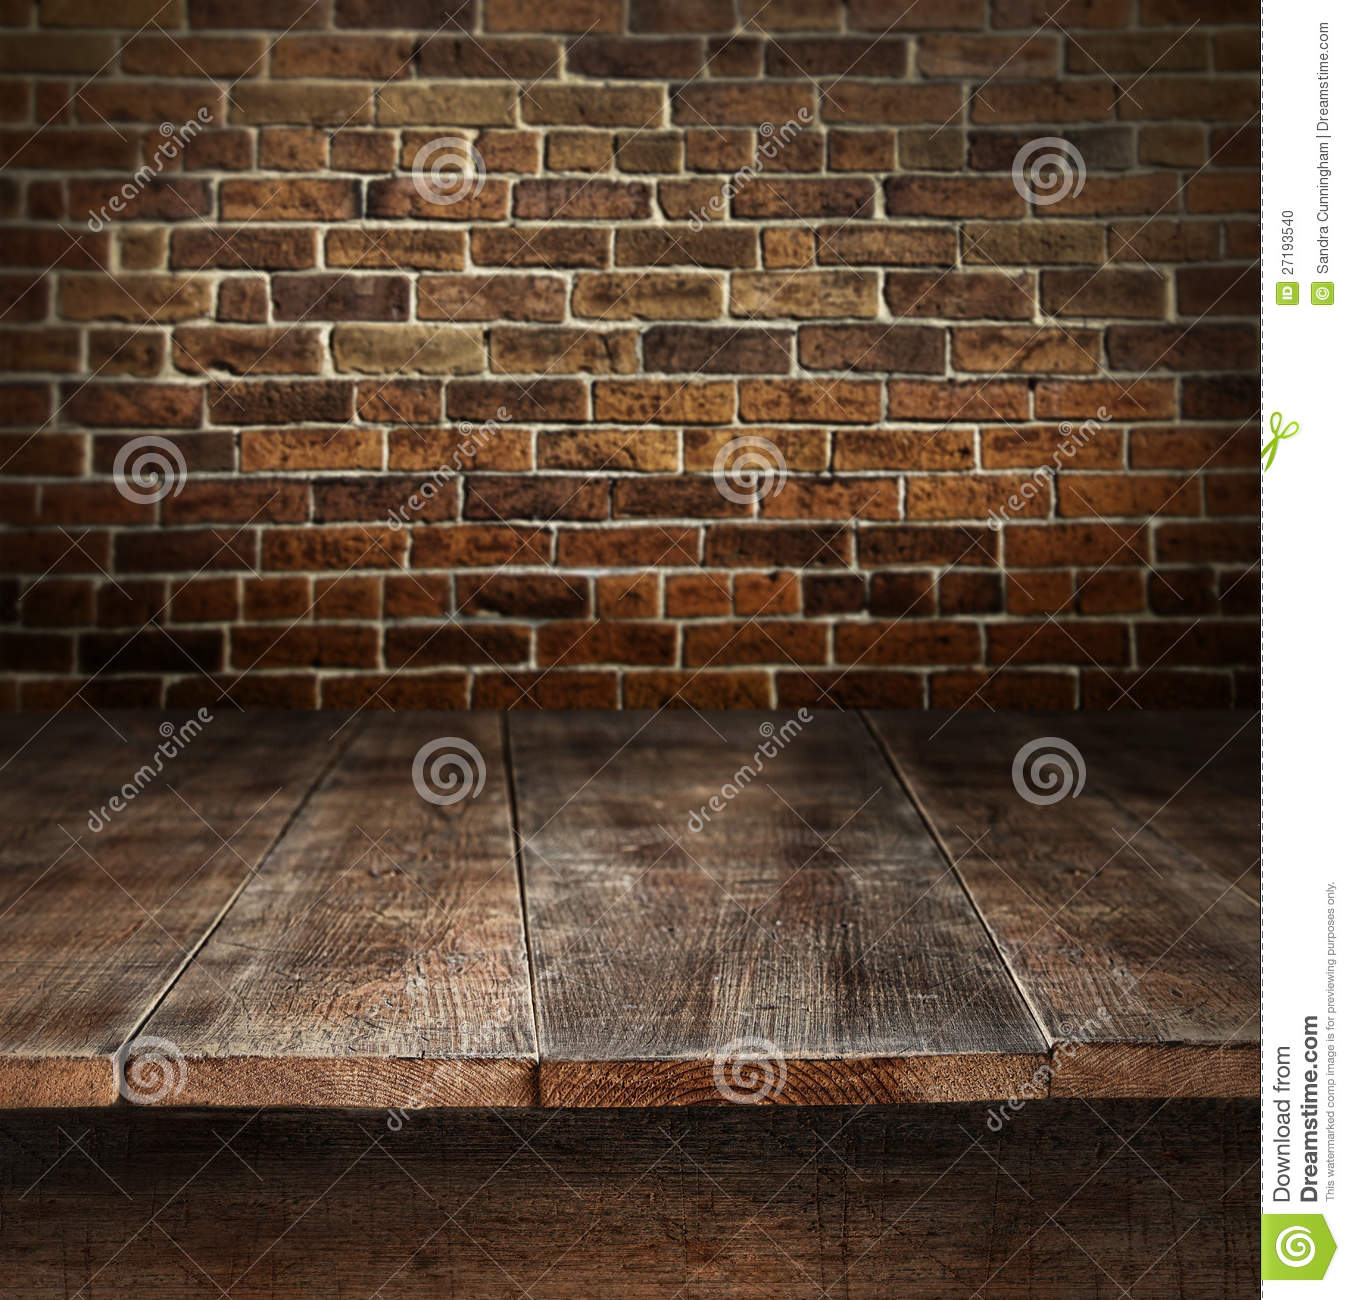 Wooden table with brick background